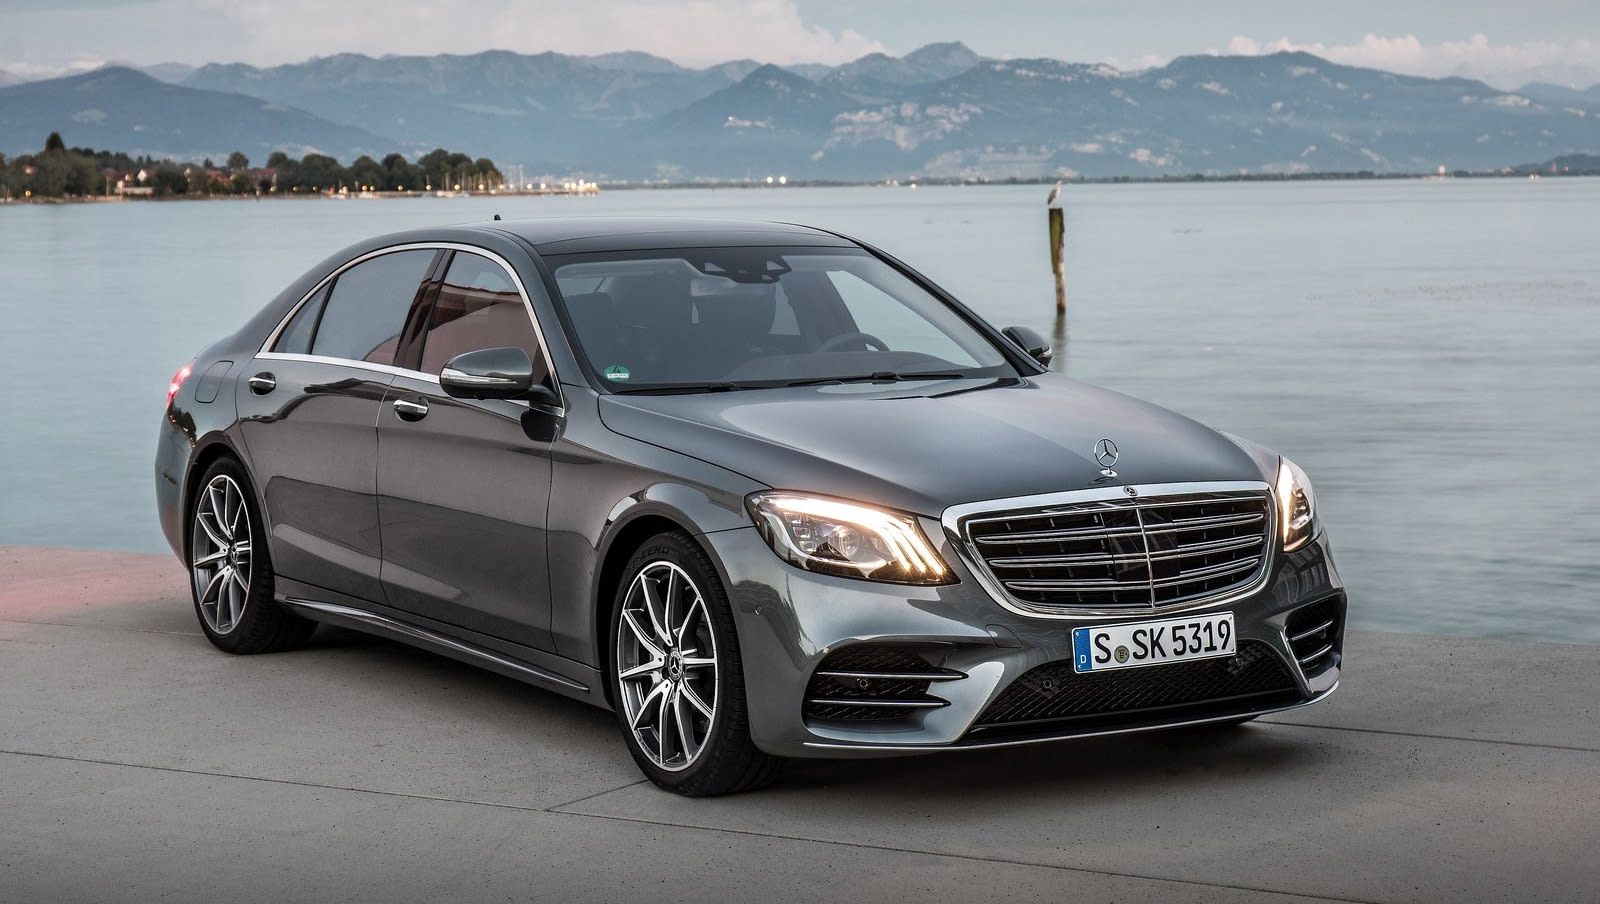 Mercedes benz s350d 2018 review snapshot carsguide for Mercedes benz account